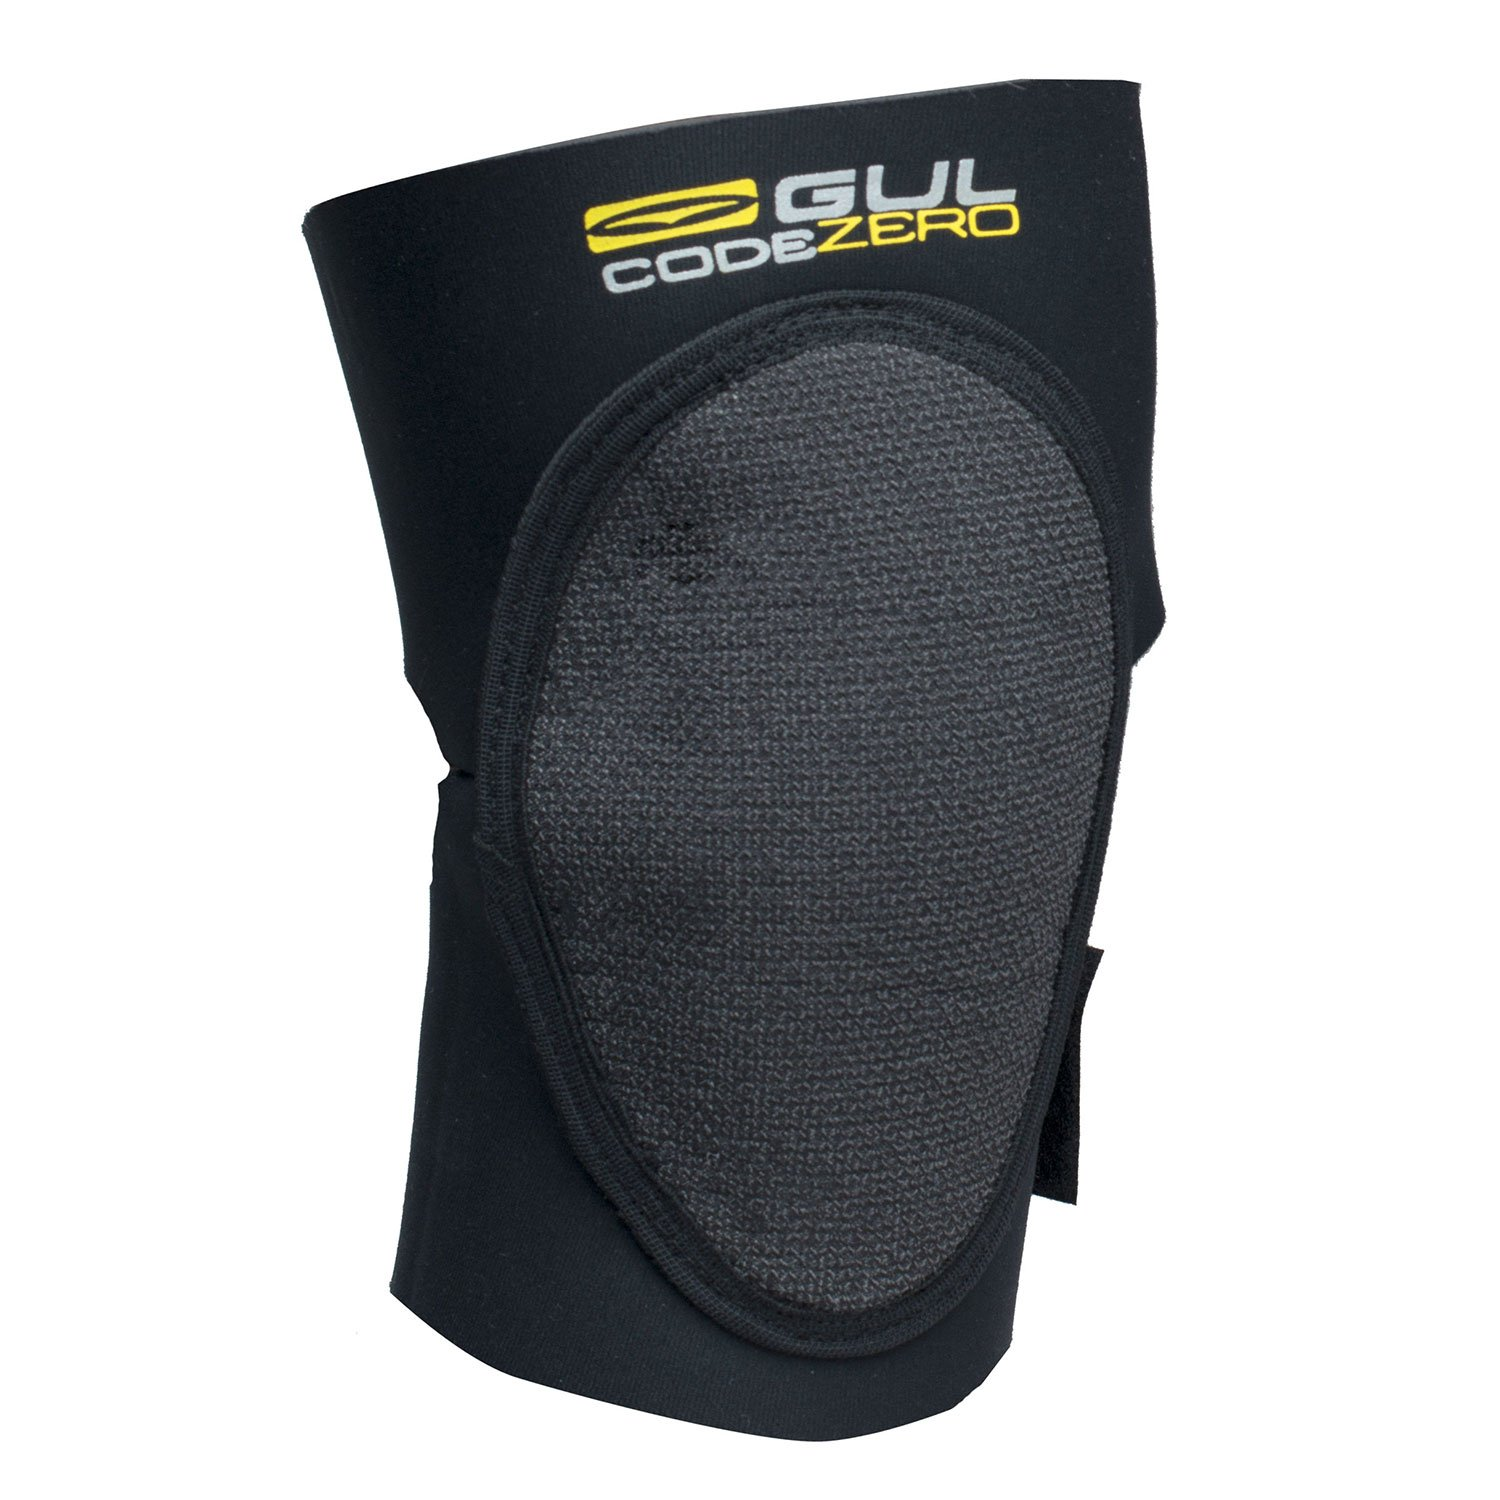 Gul Pro Knee Pads - Unisex - Adjustable elasticated straps for ease of donning - Flexible Kevlar hard wearing pads